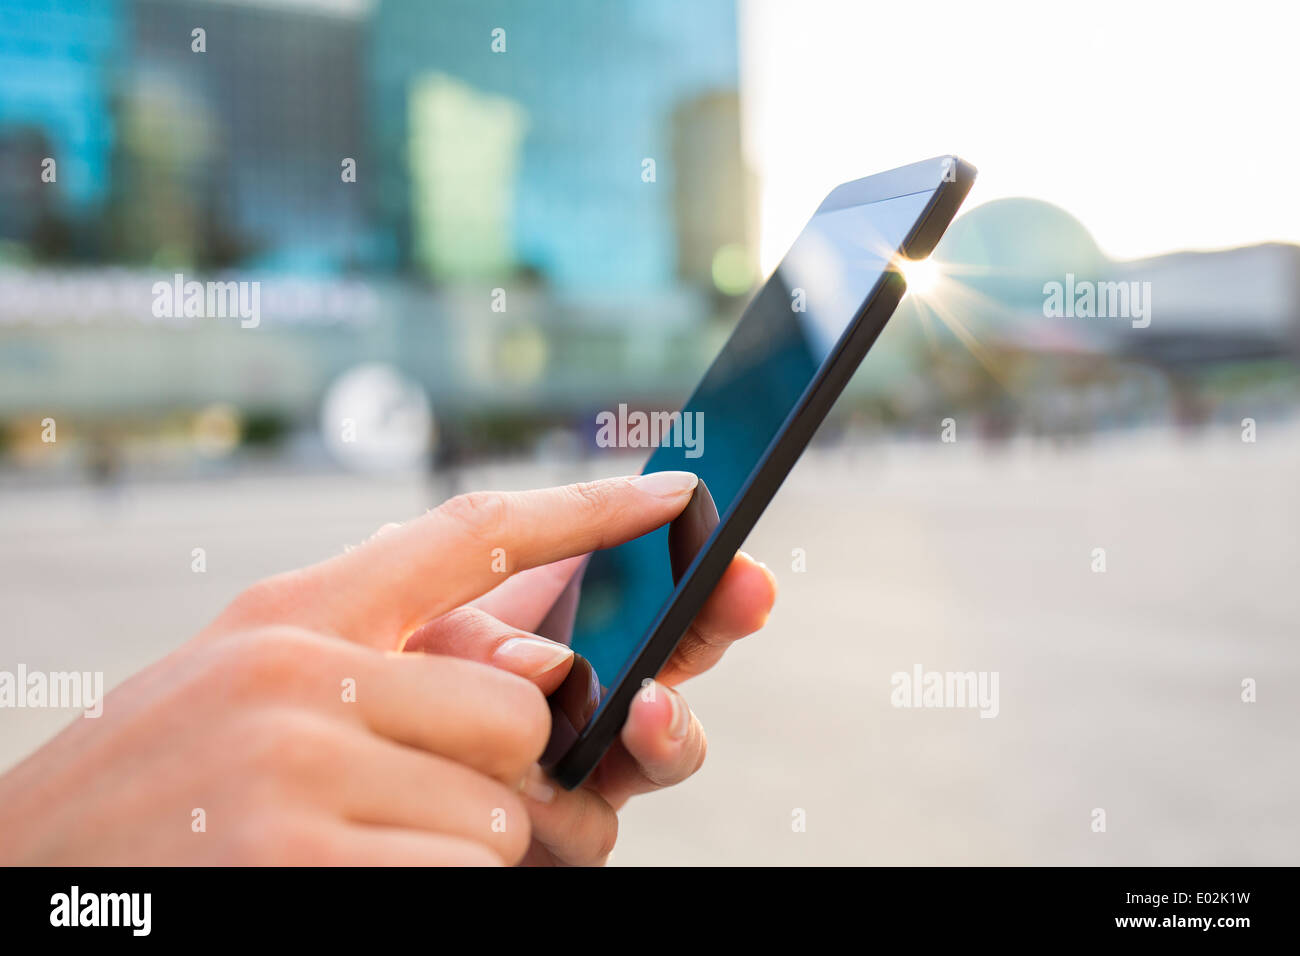 Female smartphone hand sun summer message sms e-mail - Stock Image